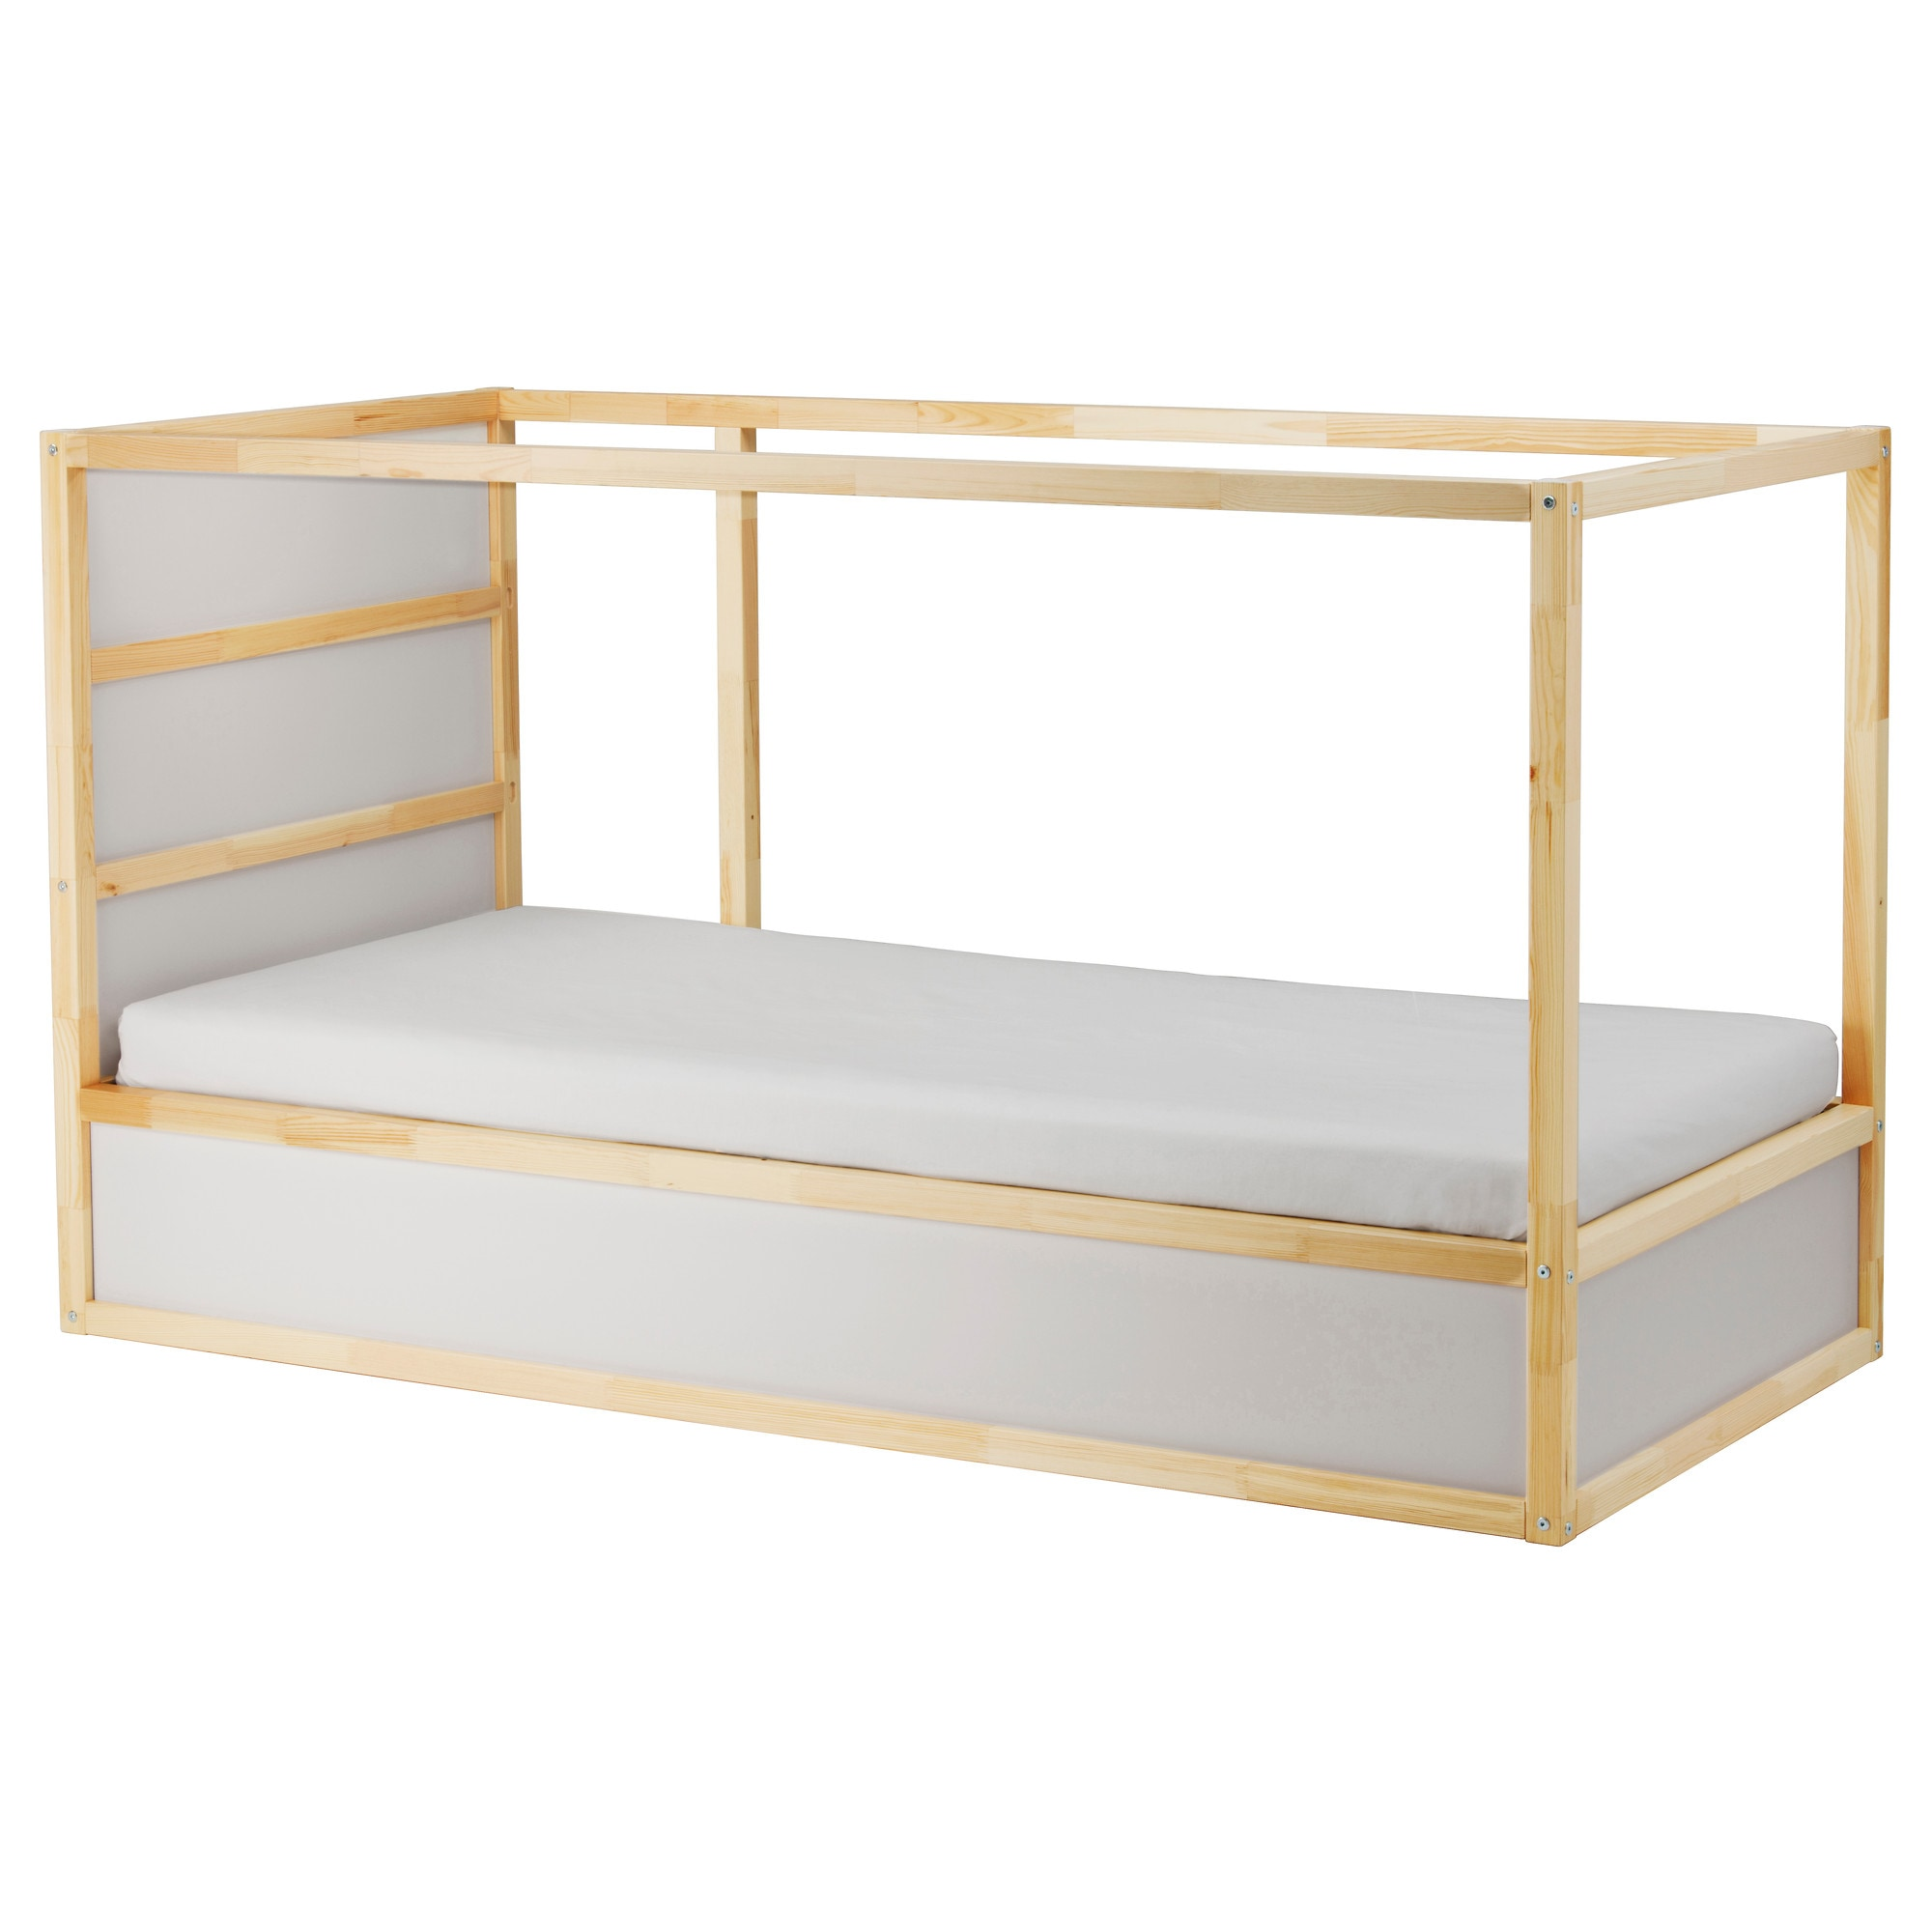 Bunk beds for kids ikea - Bunk Beds For Kids Ikea 22